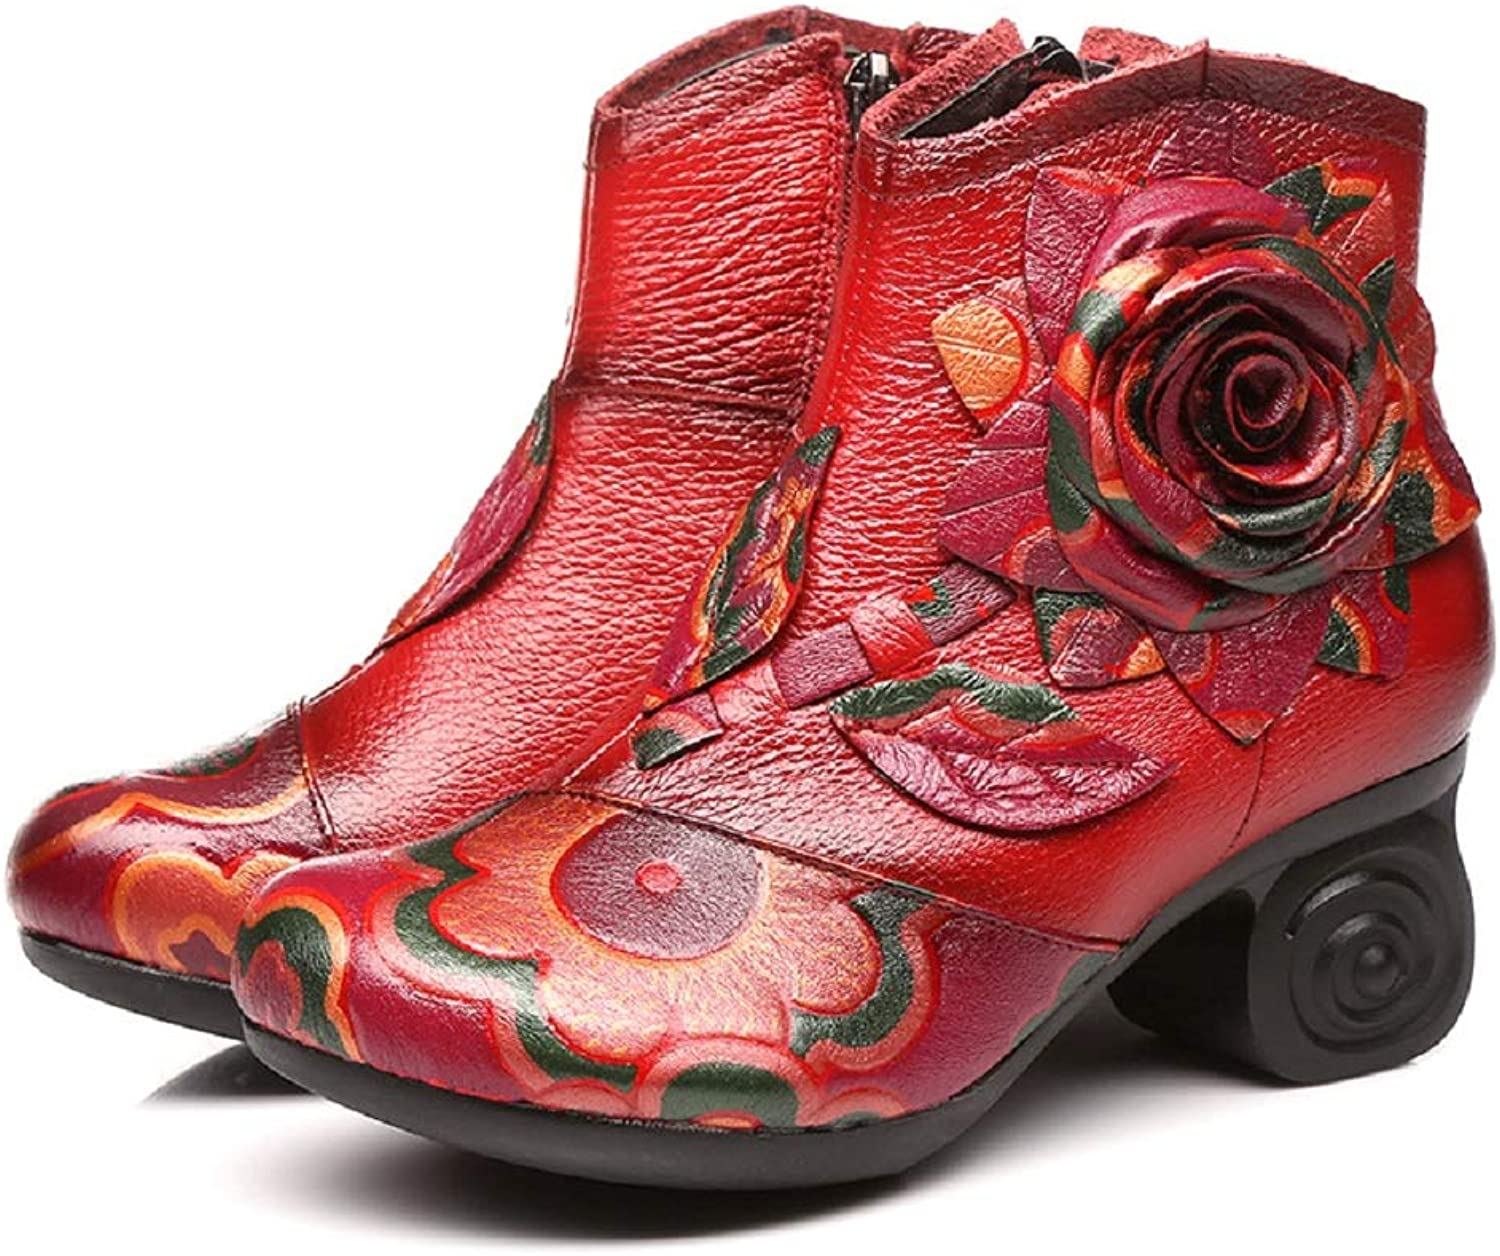 LingGT Vintage Women Boots Leather Flower Print Leather shoes (color   Red, Size   CA 8)